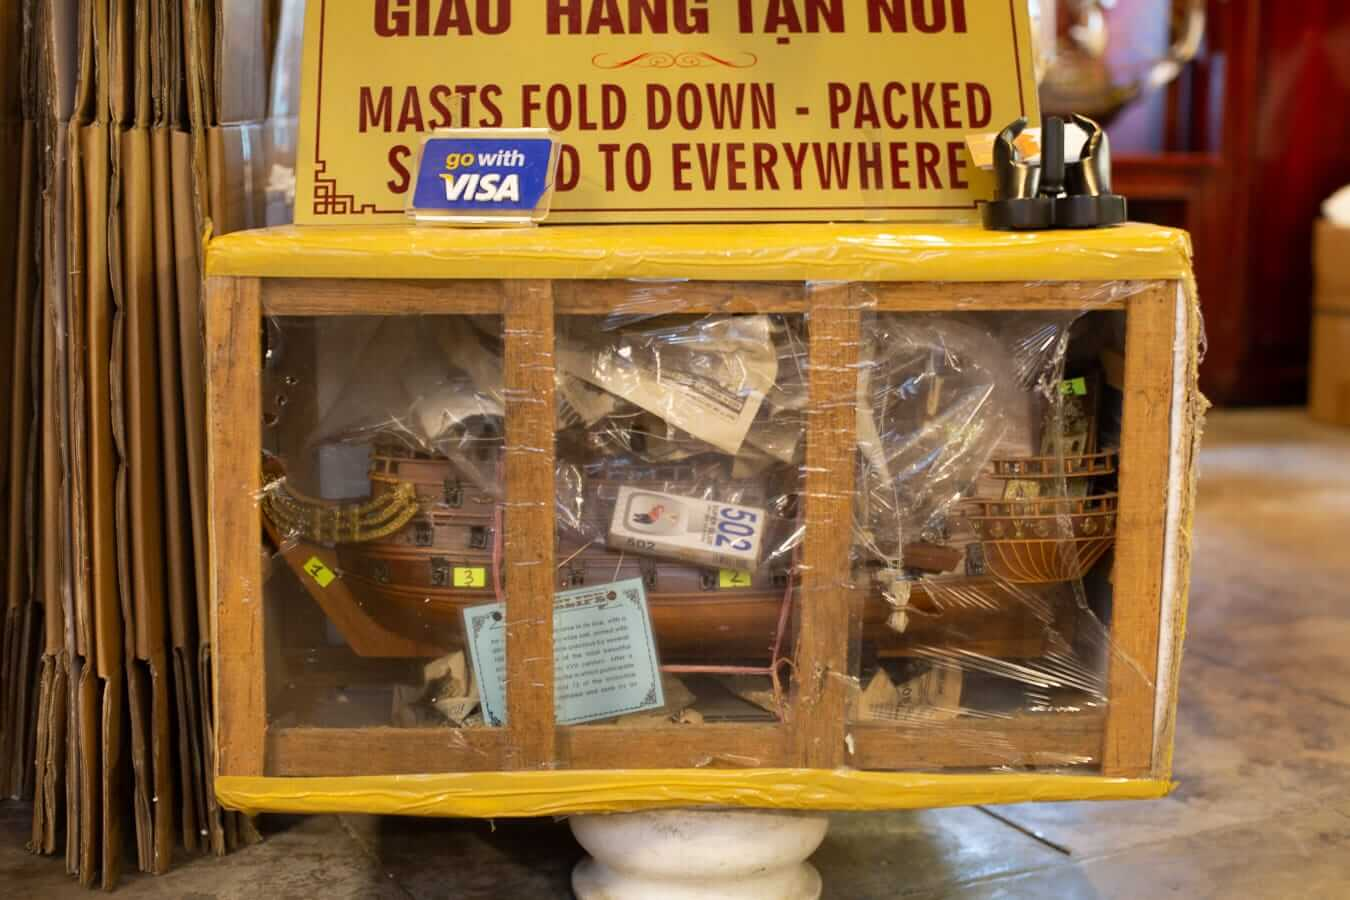 Packaged souvenirs for shipping from Hoi An